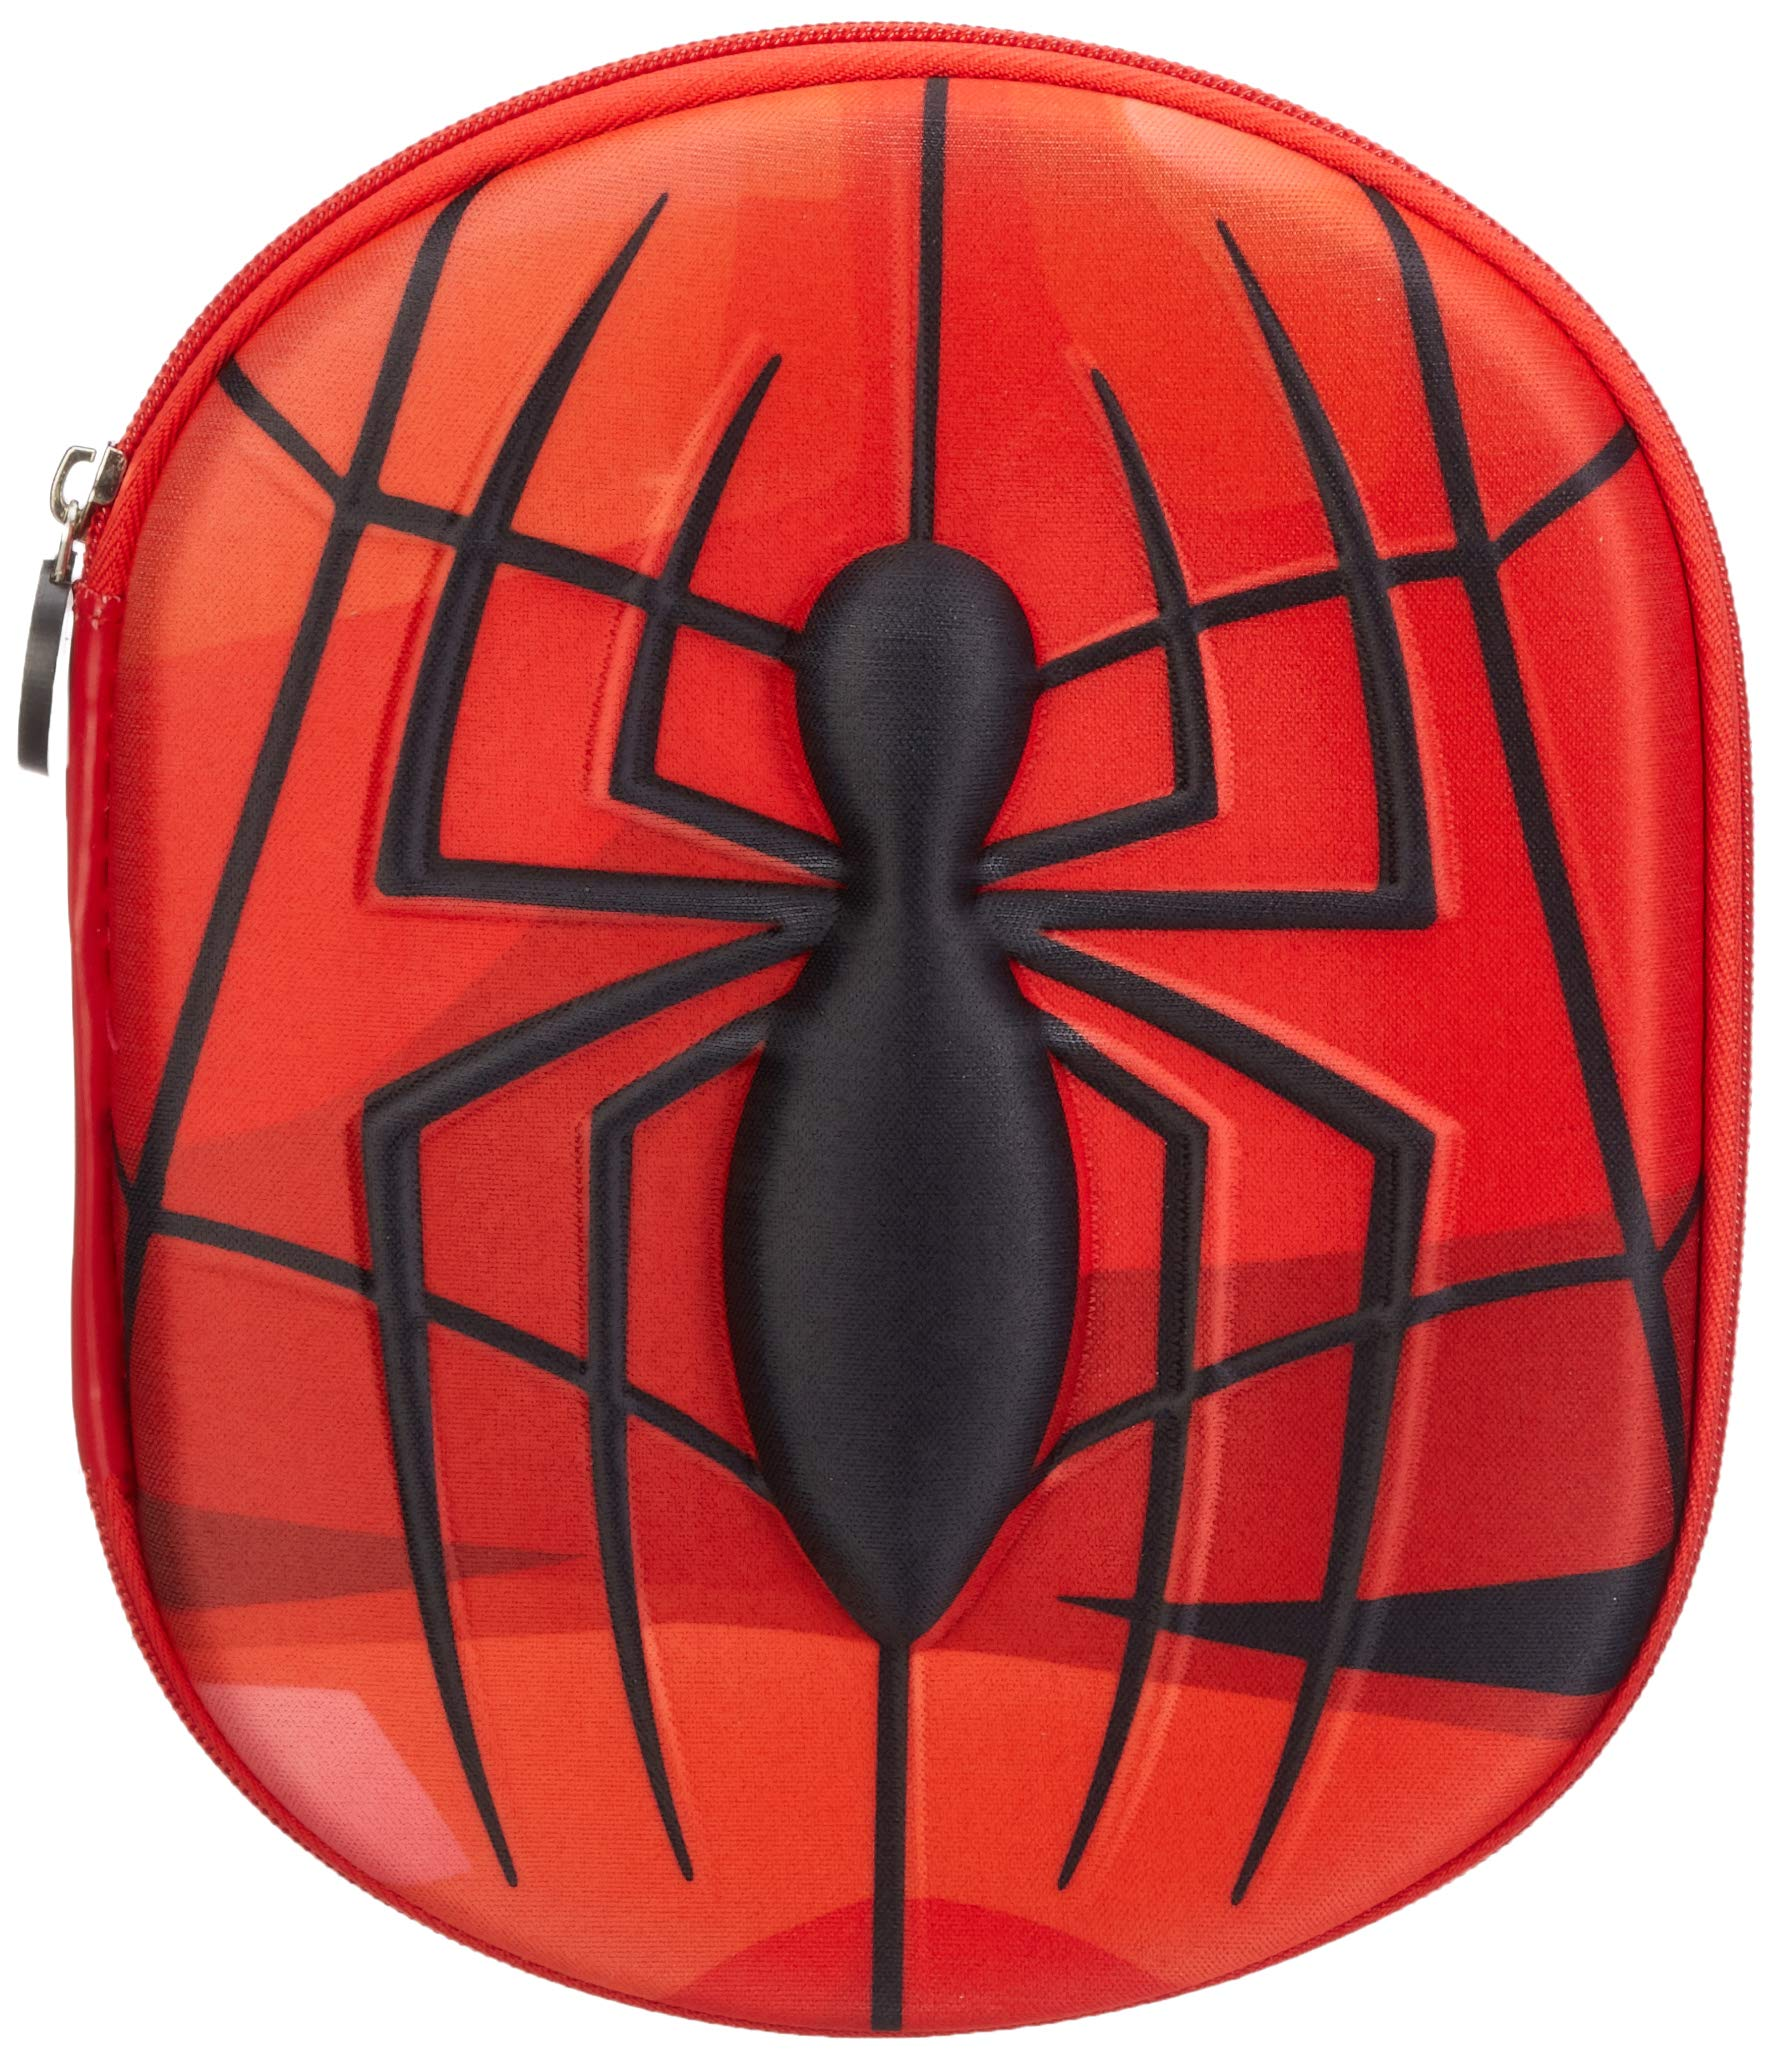 Spider-Man-2700000212 Spiderman Plumier, Multicolor, 24 cm (Artesanía Cerdá CD-27-0212)